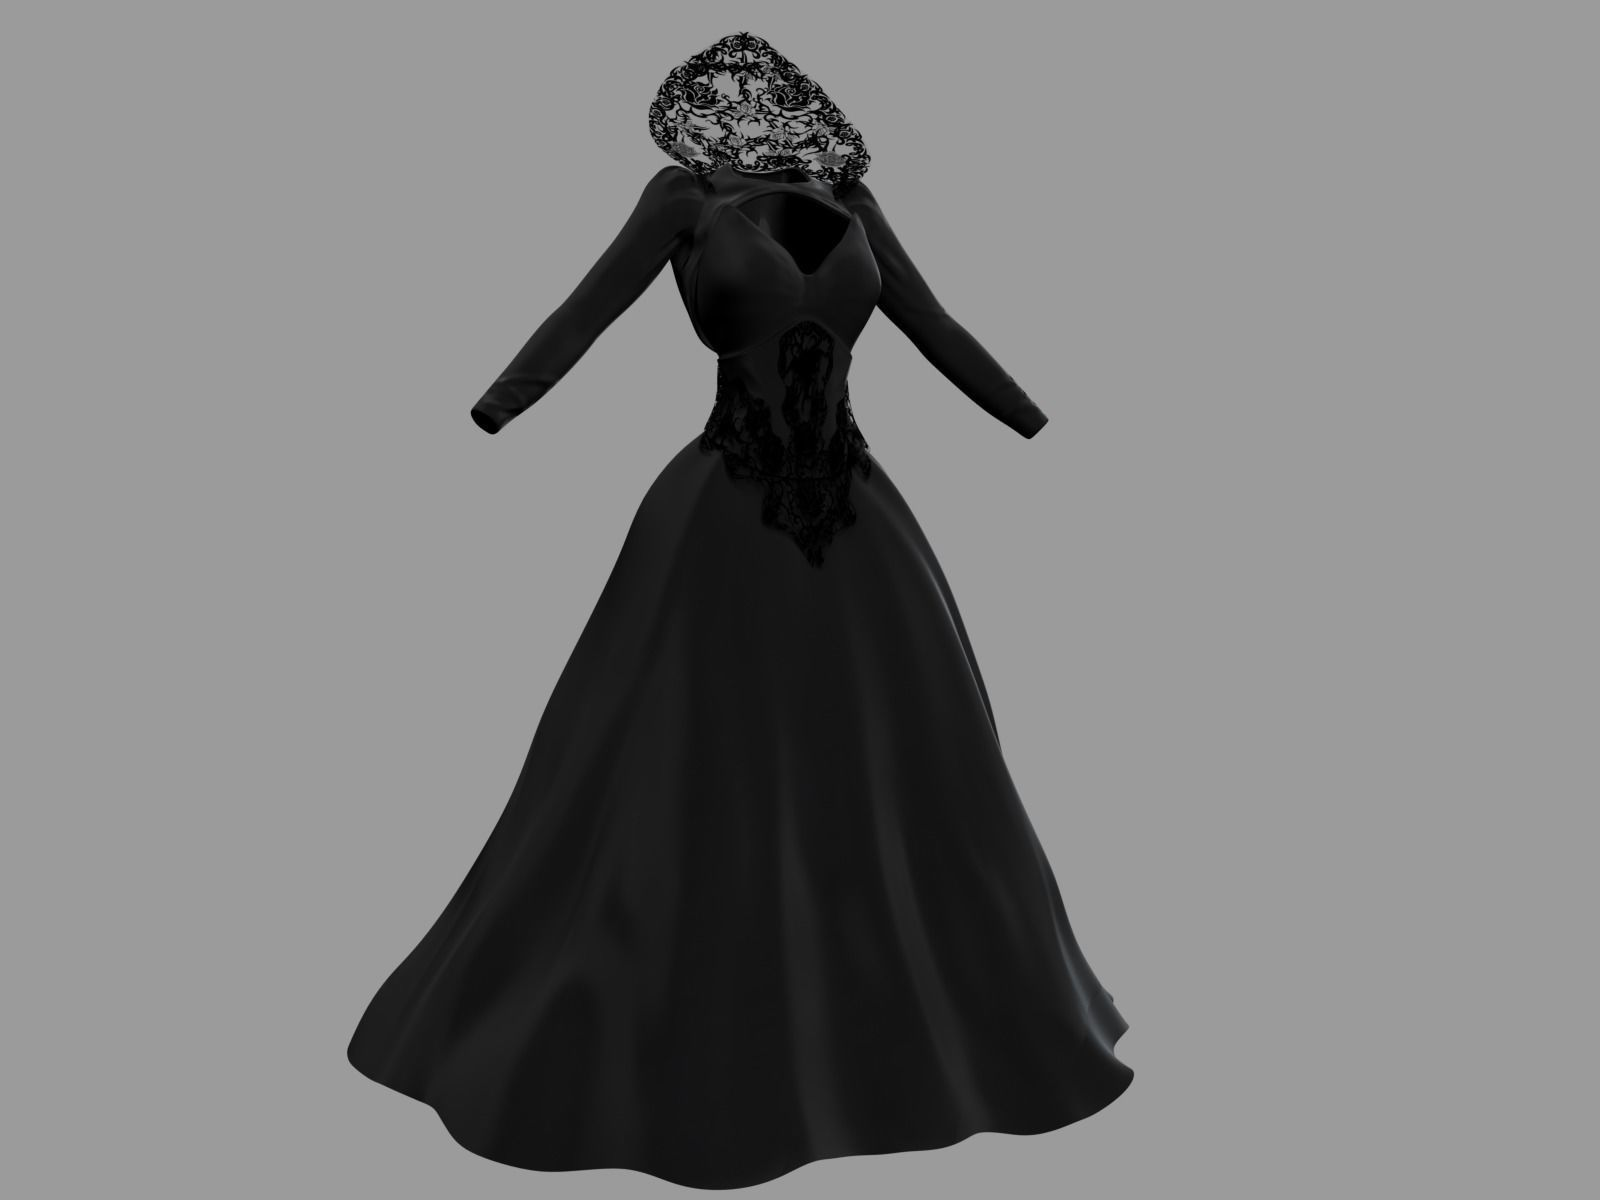 3D model Victorian Gothic Dress 4 | CGTrader